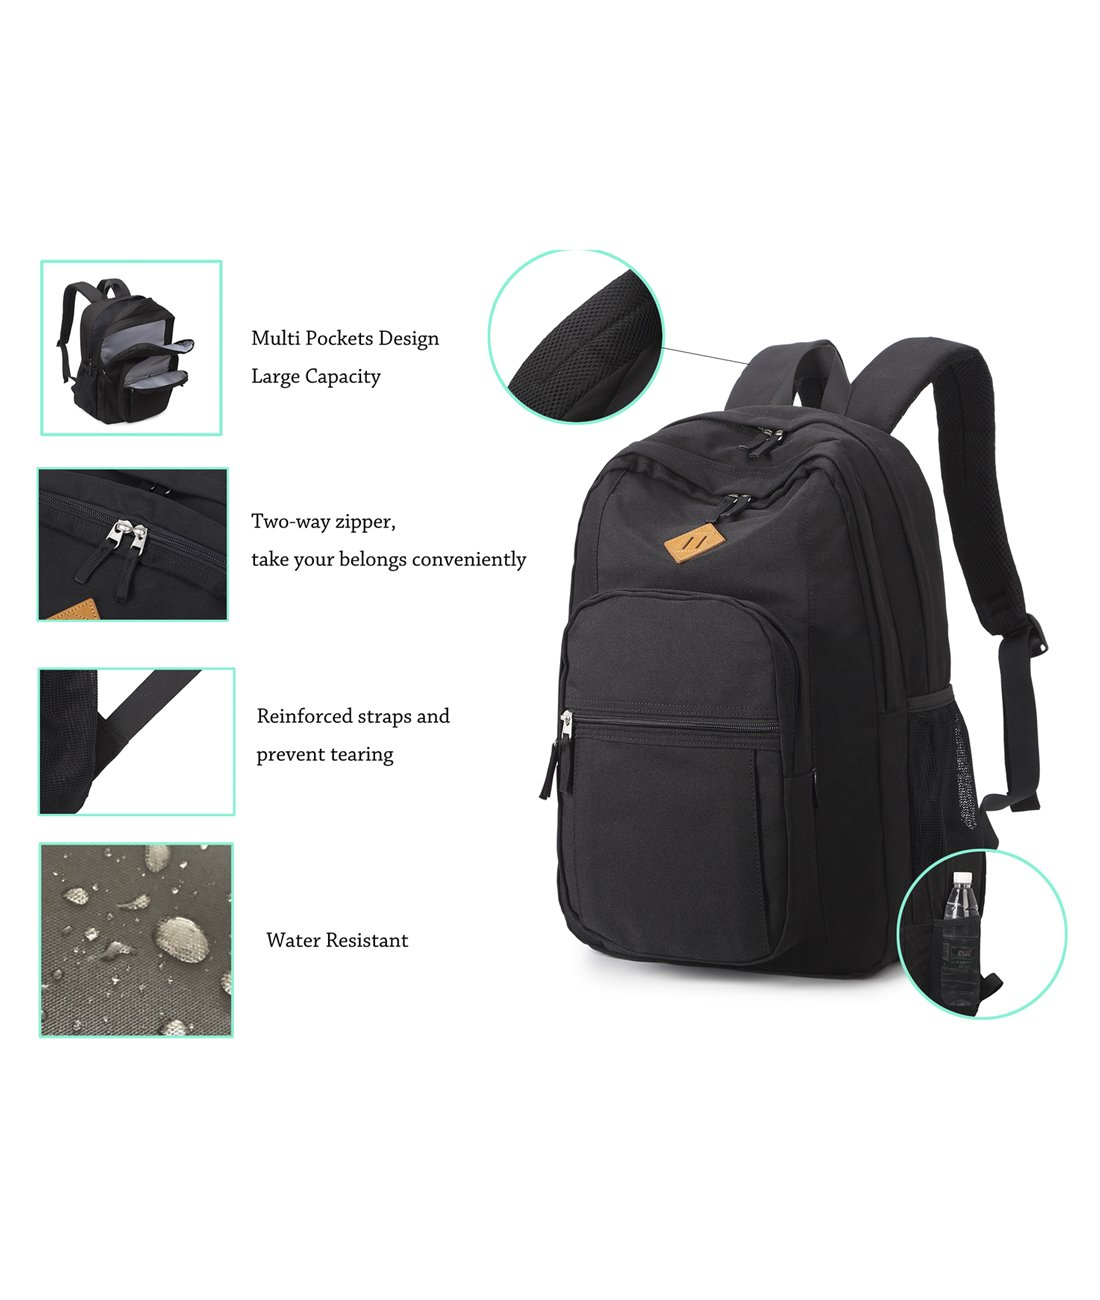 Abshoo Classical Basic Travel Backpack For School Water Resistant ... 5ac8d117fb